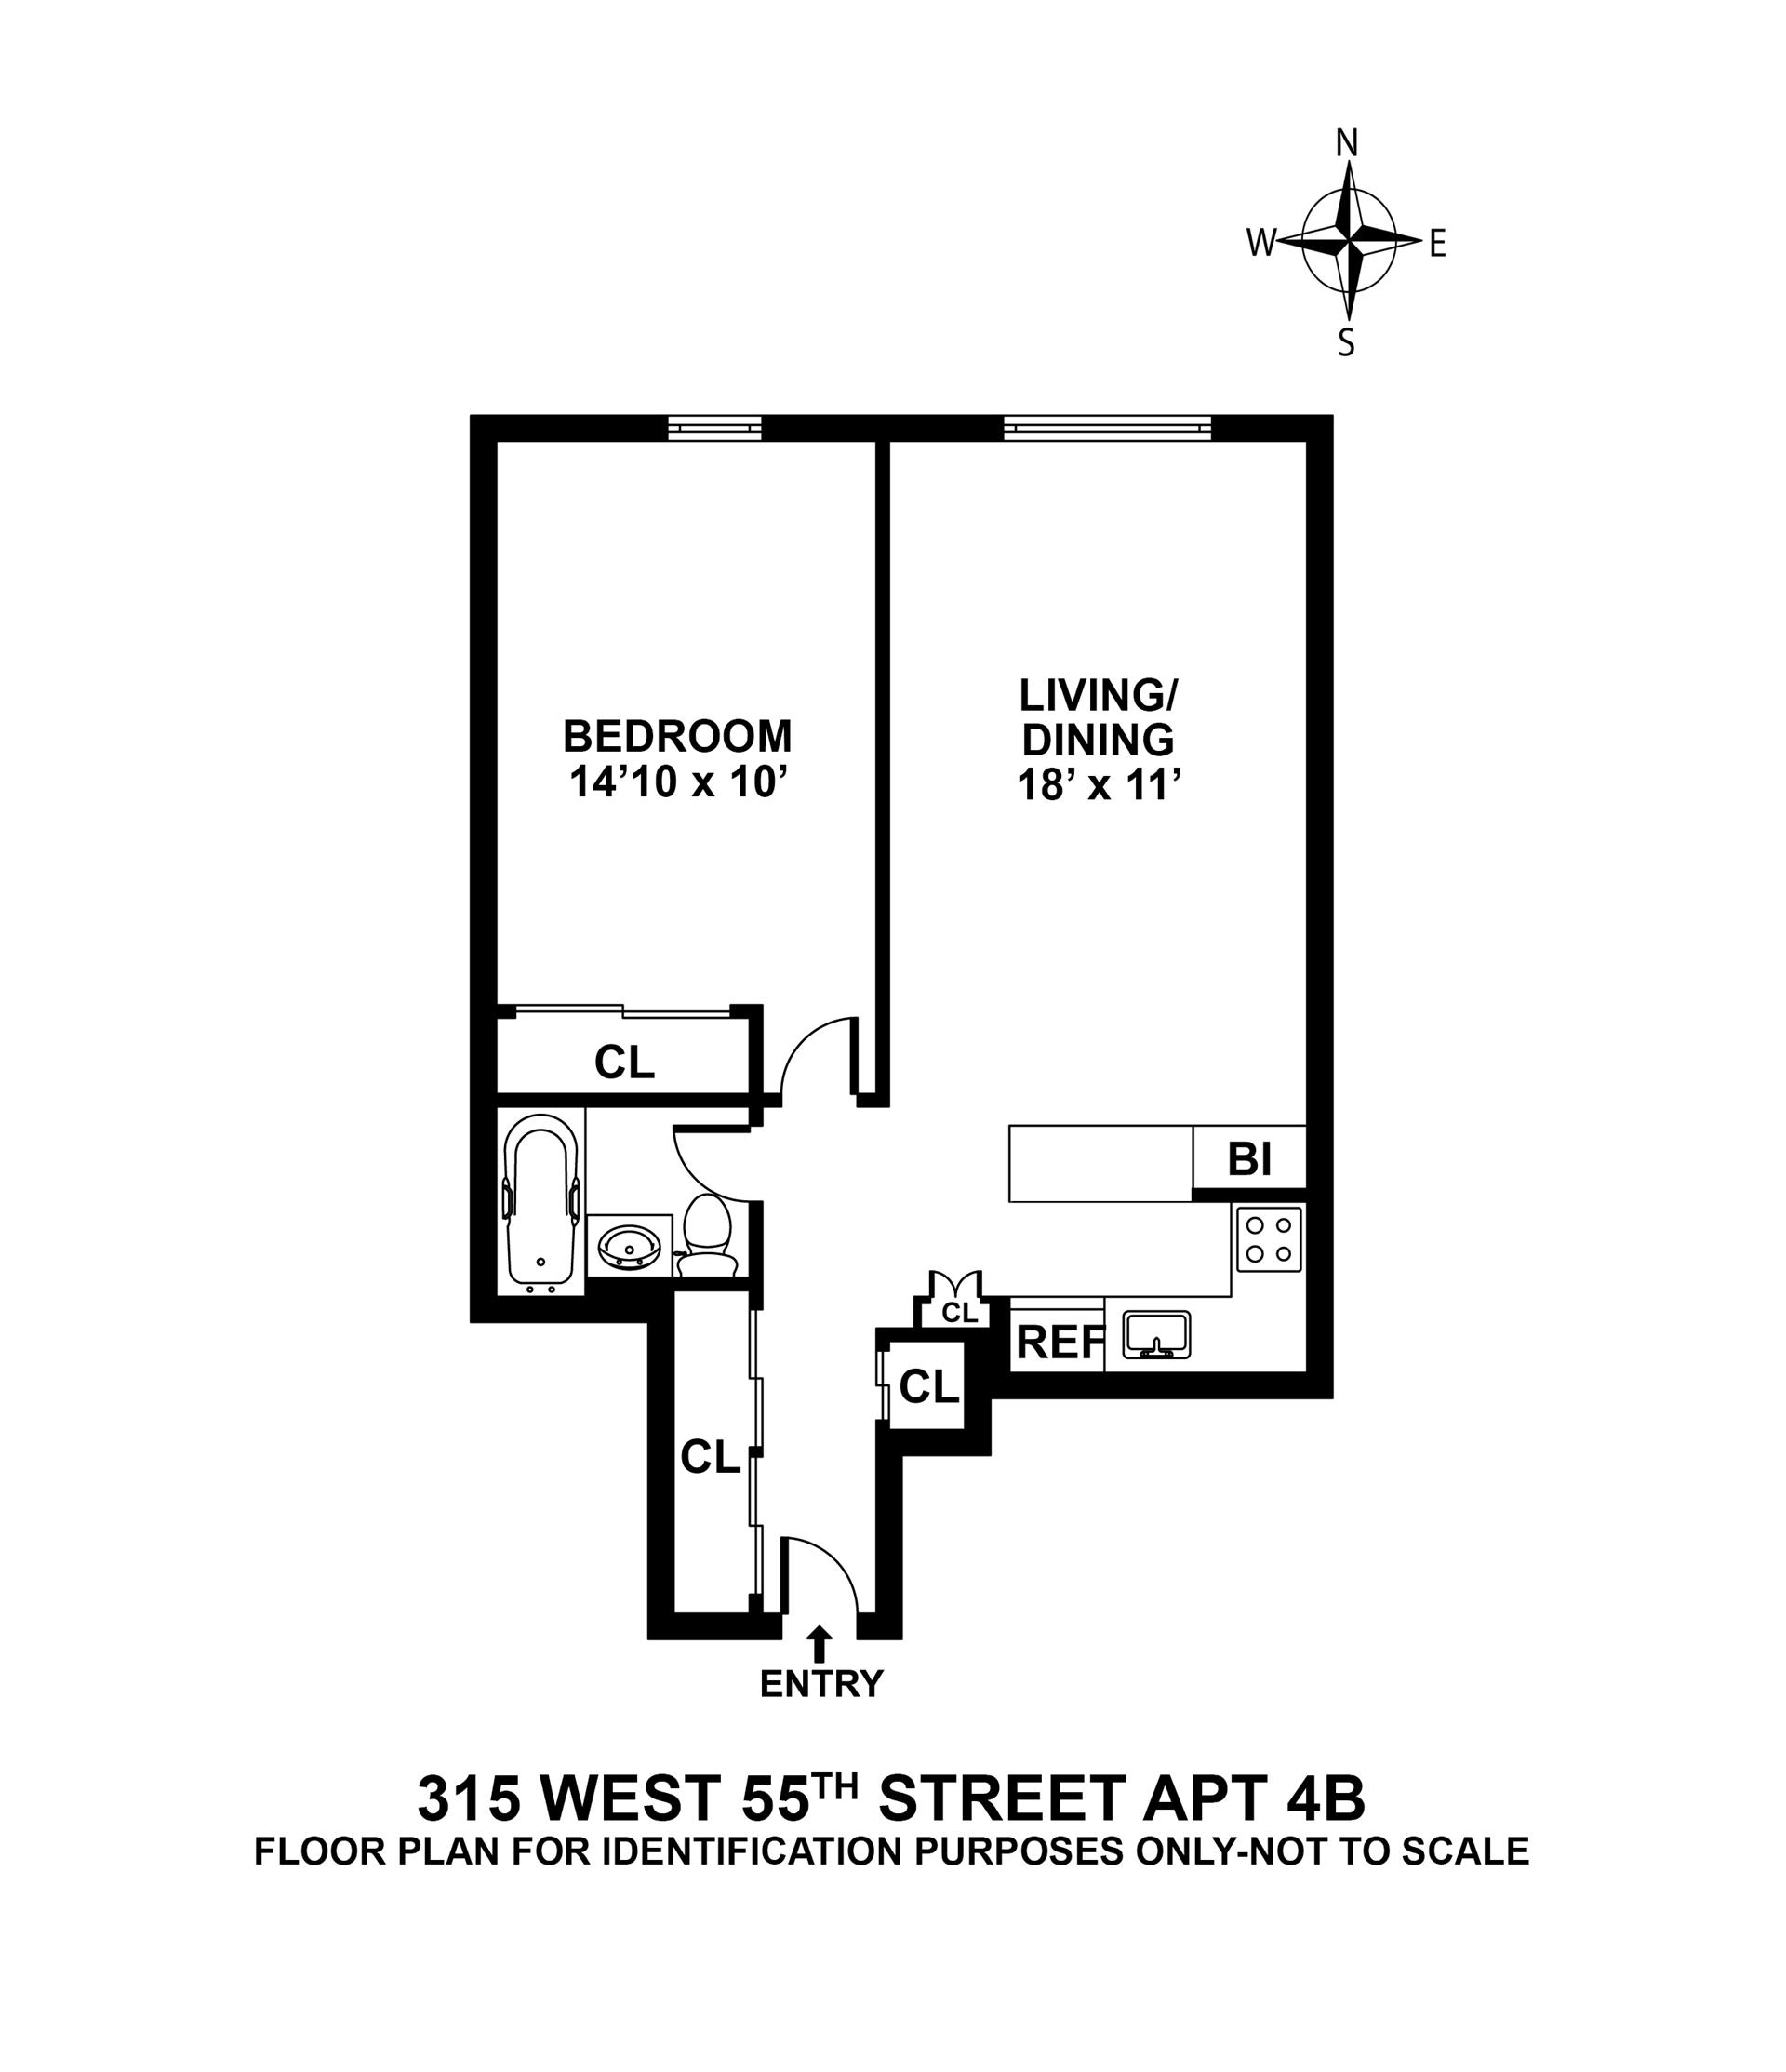 Floor plan of 315 West 55th St, 4B - Clinton, New York